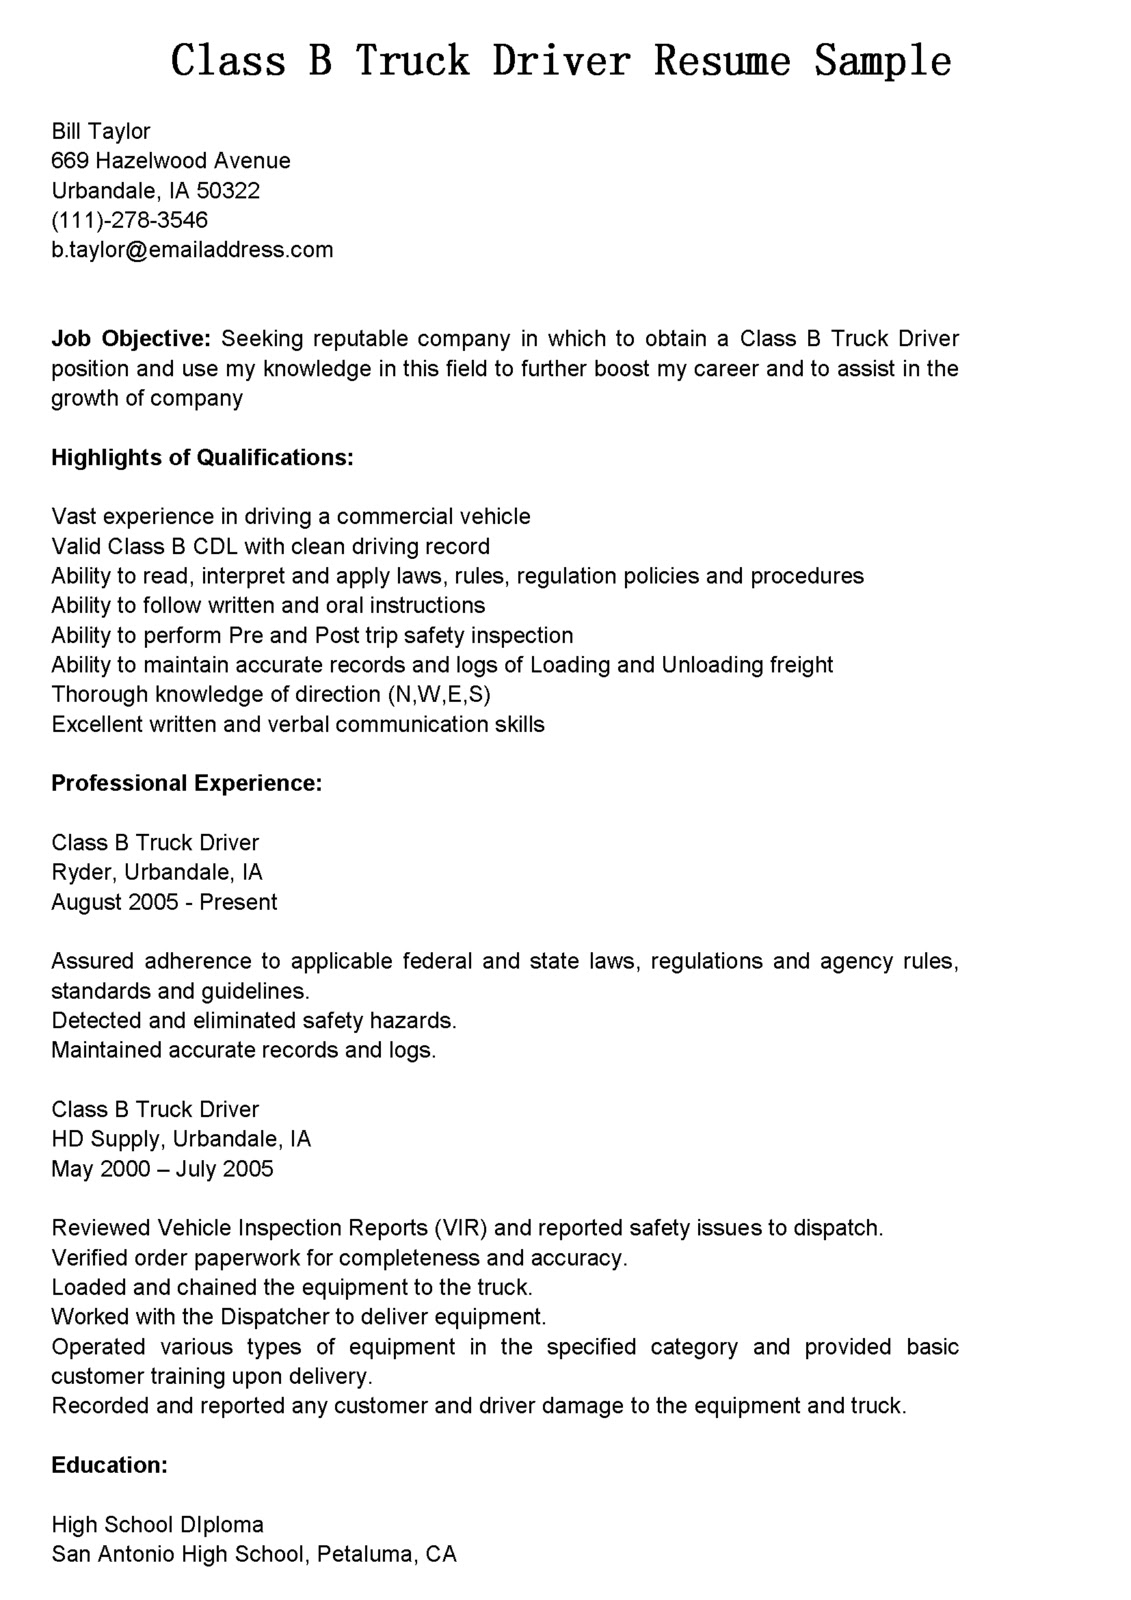 Resume For A Driver Driver Resumes Class B Truck Driver Resume Sample